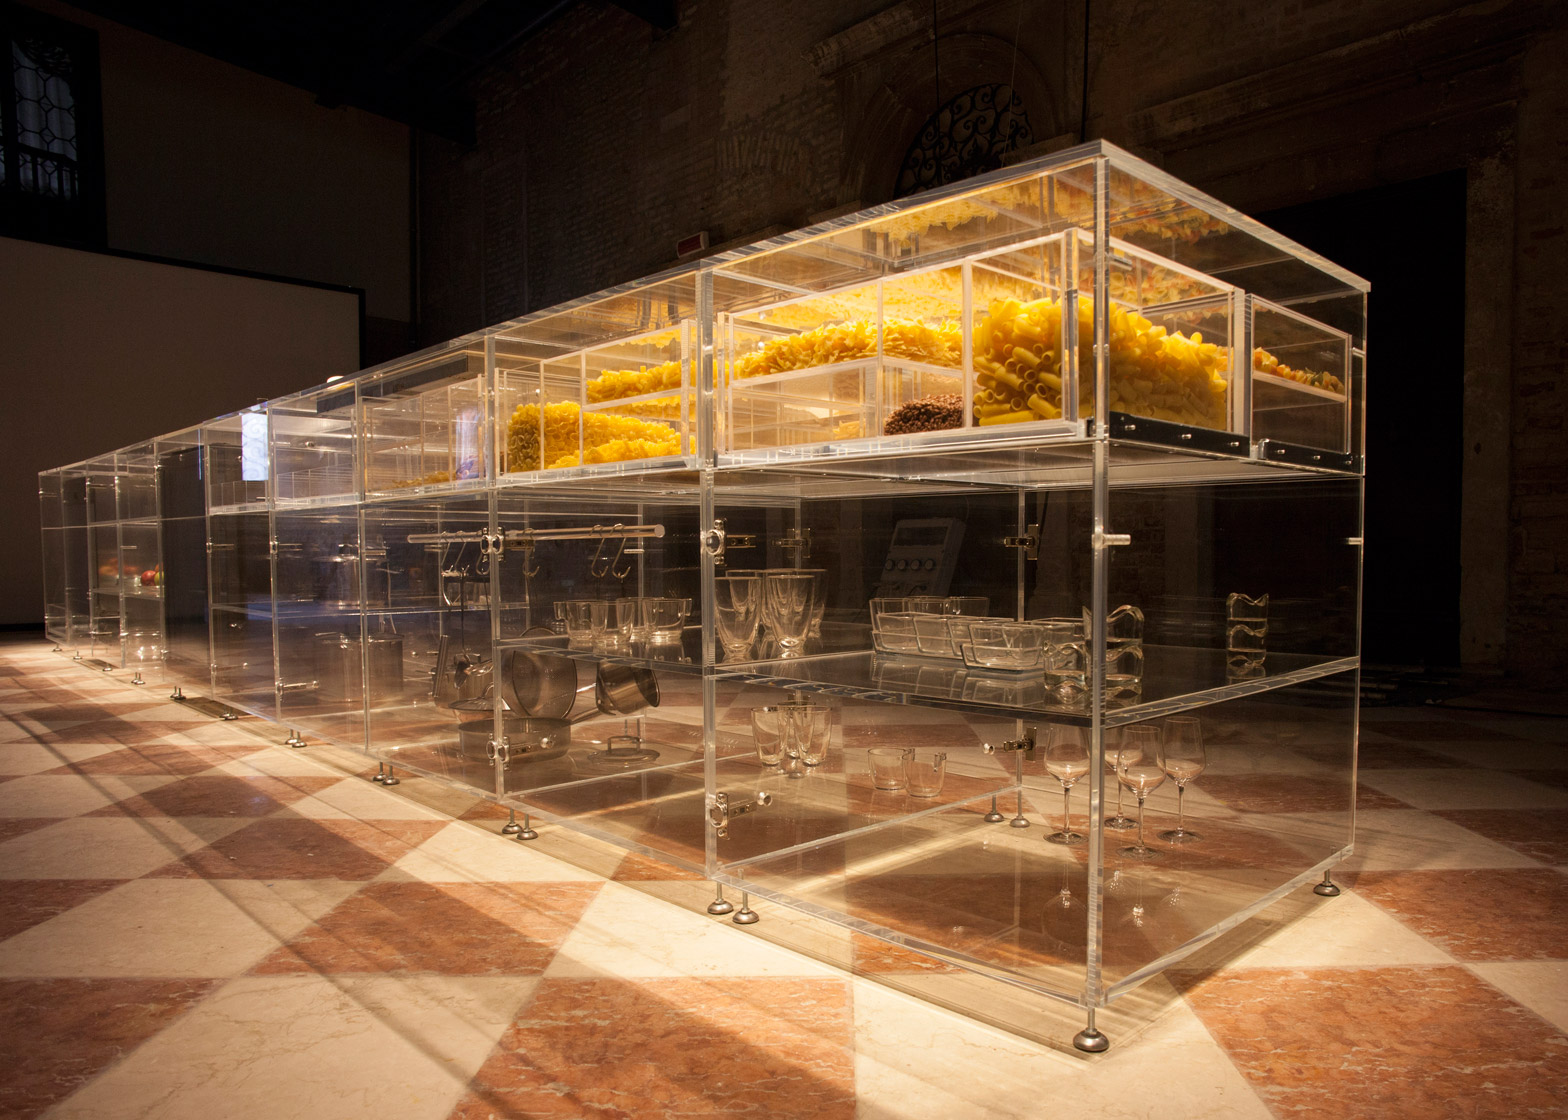 mvrdv designs transparent kitchen to make food sexier